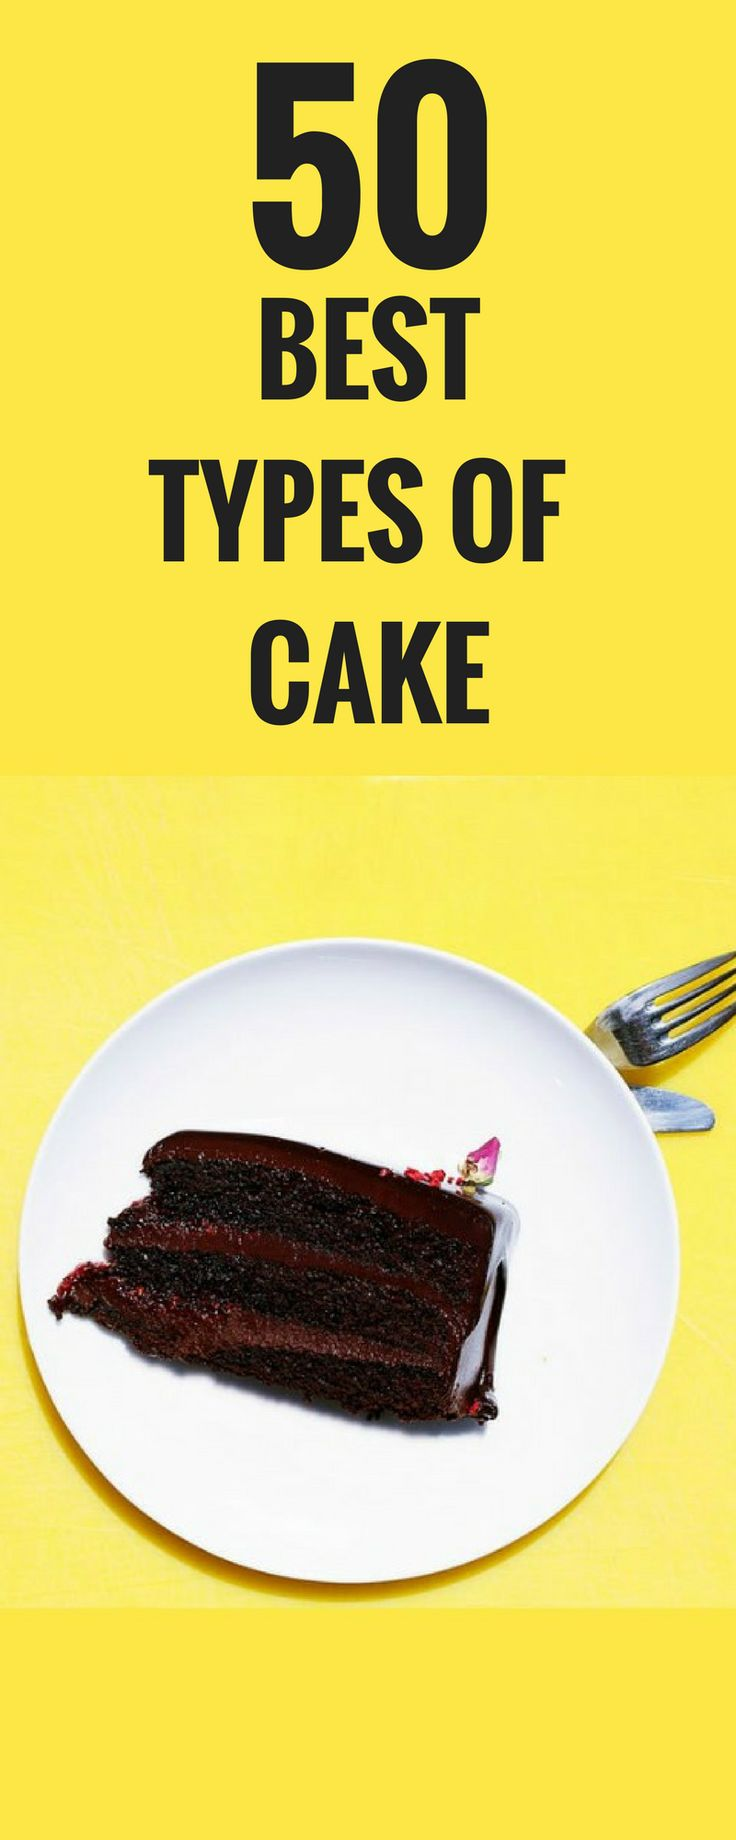 Every type of cake, ranked! Good to know!